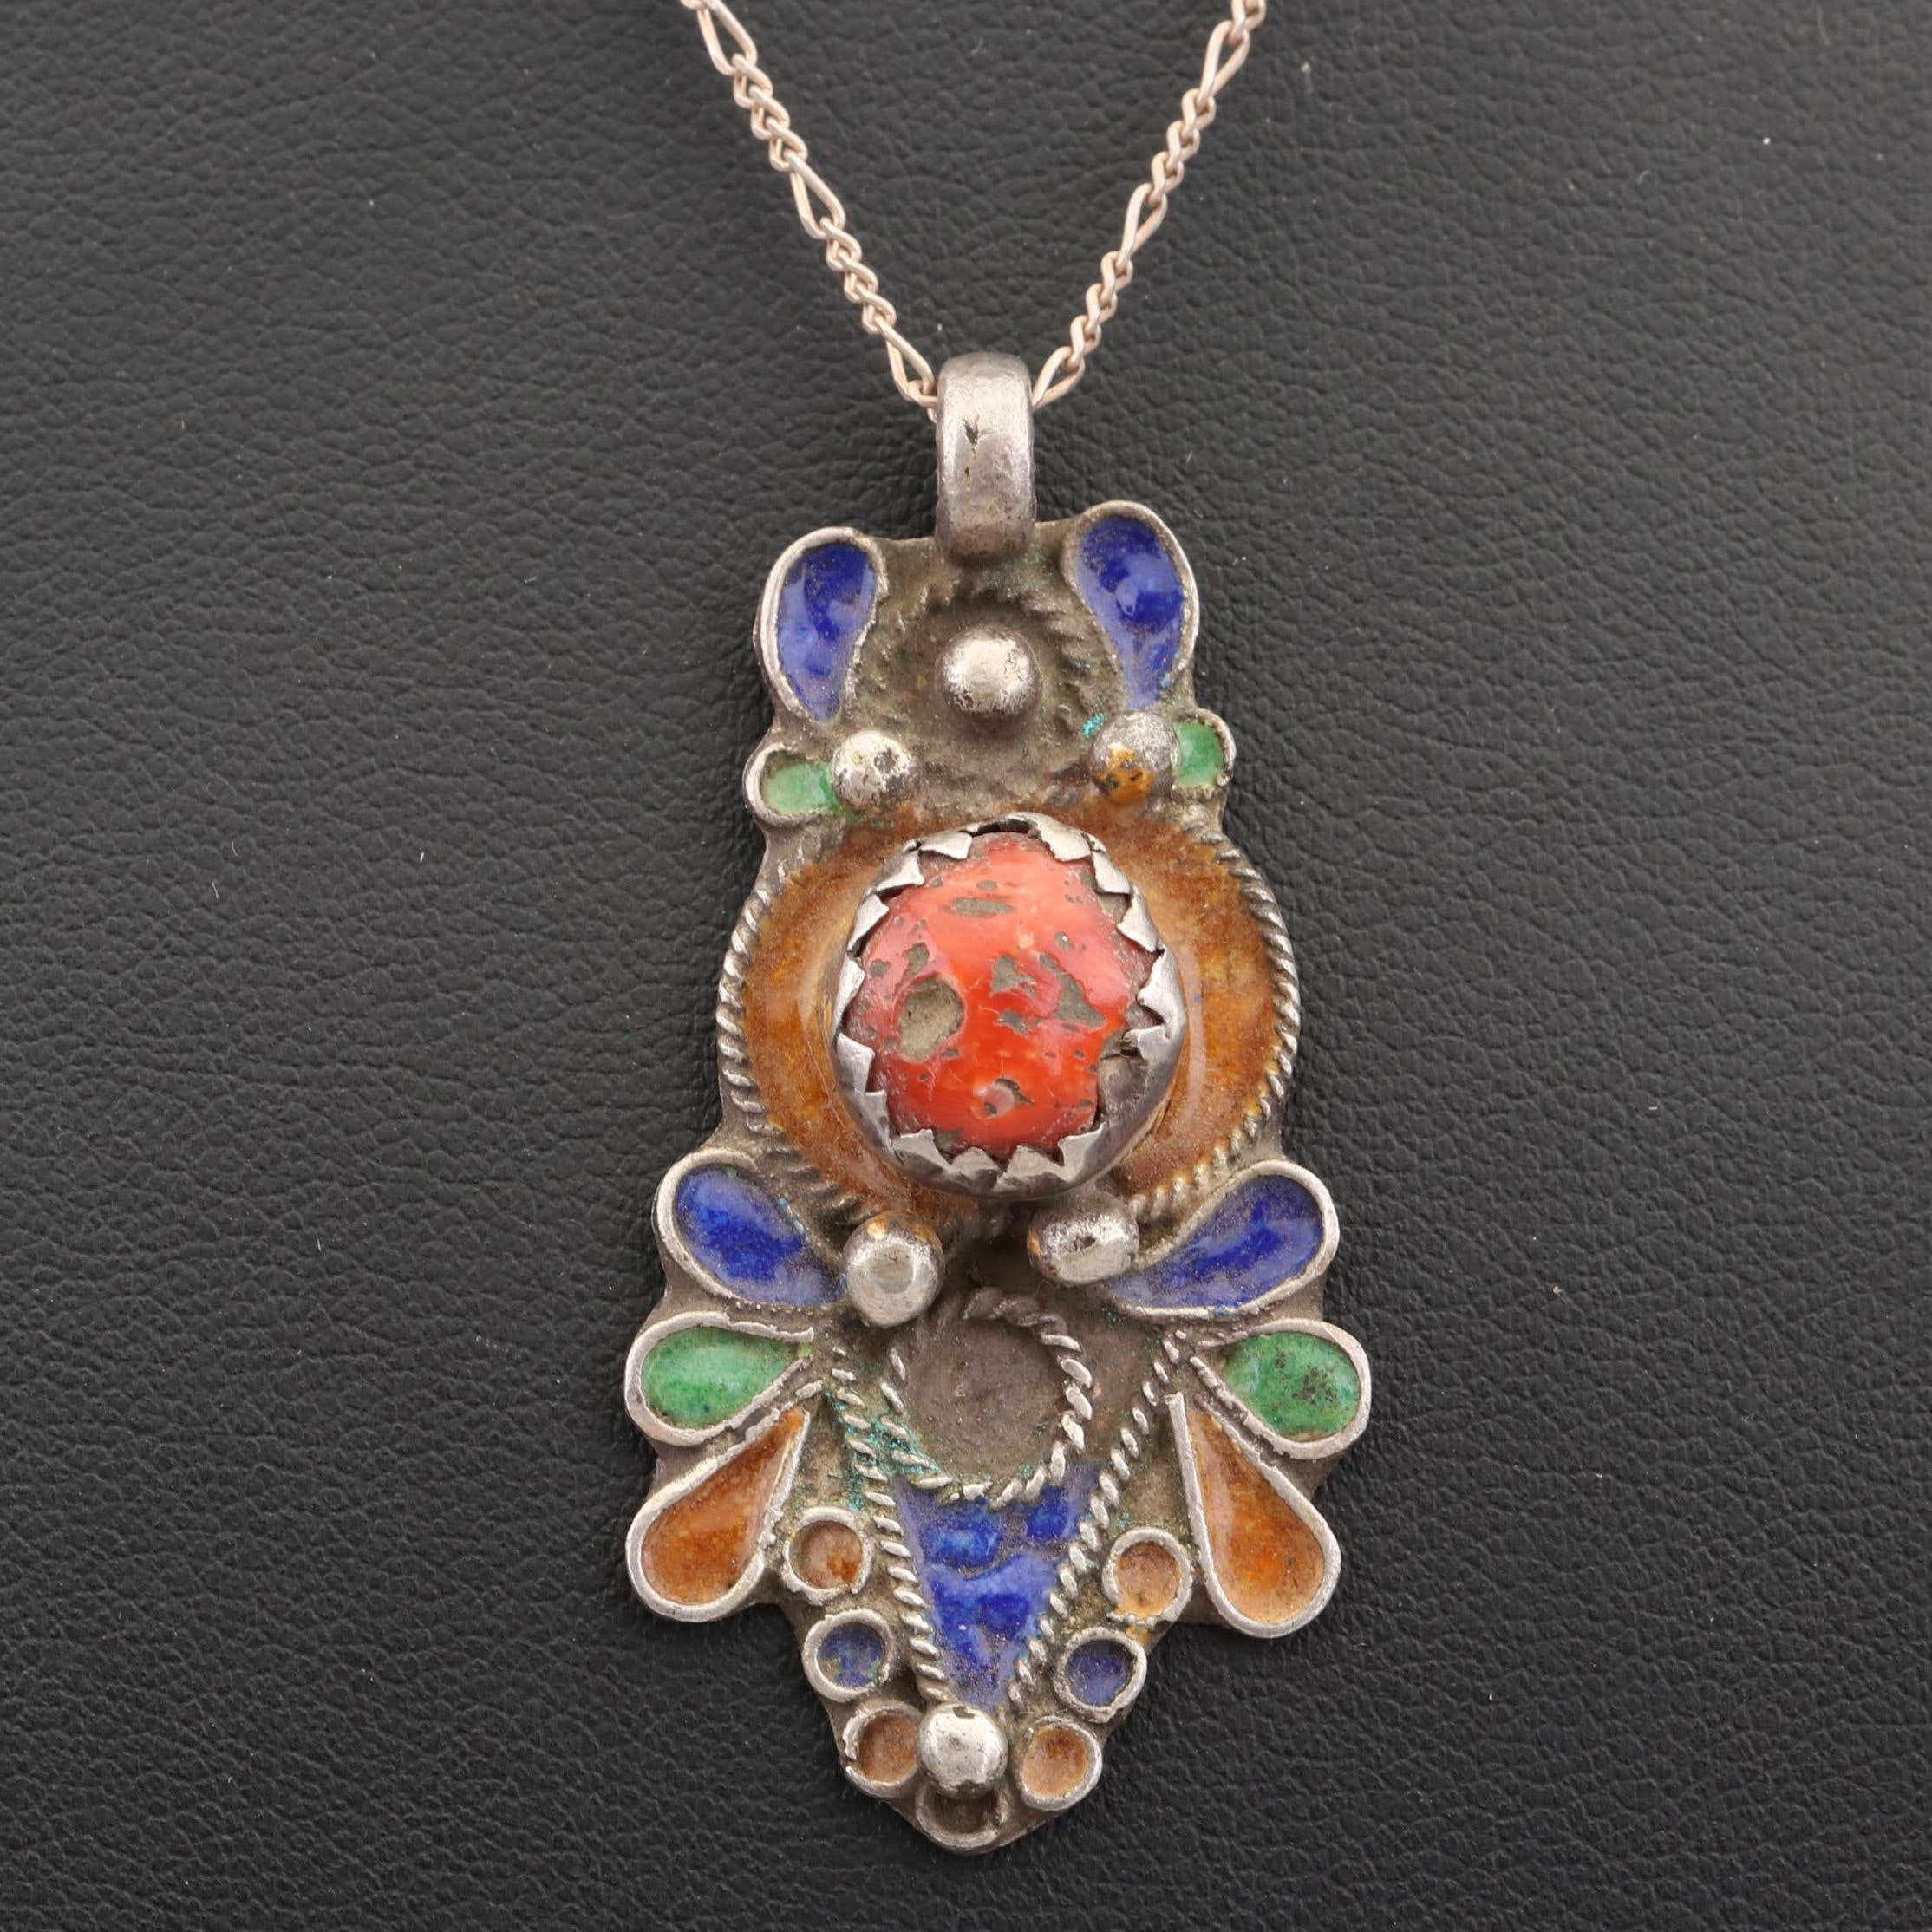 Sterling Silver Coral and Enameled Pendant Necklace